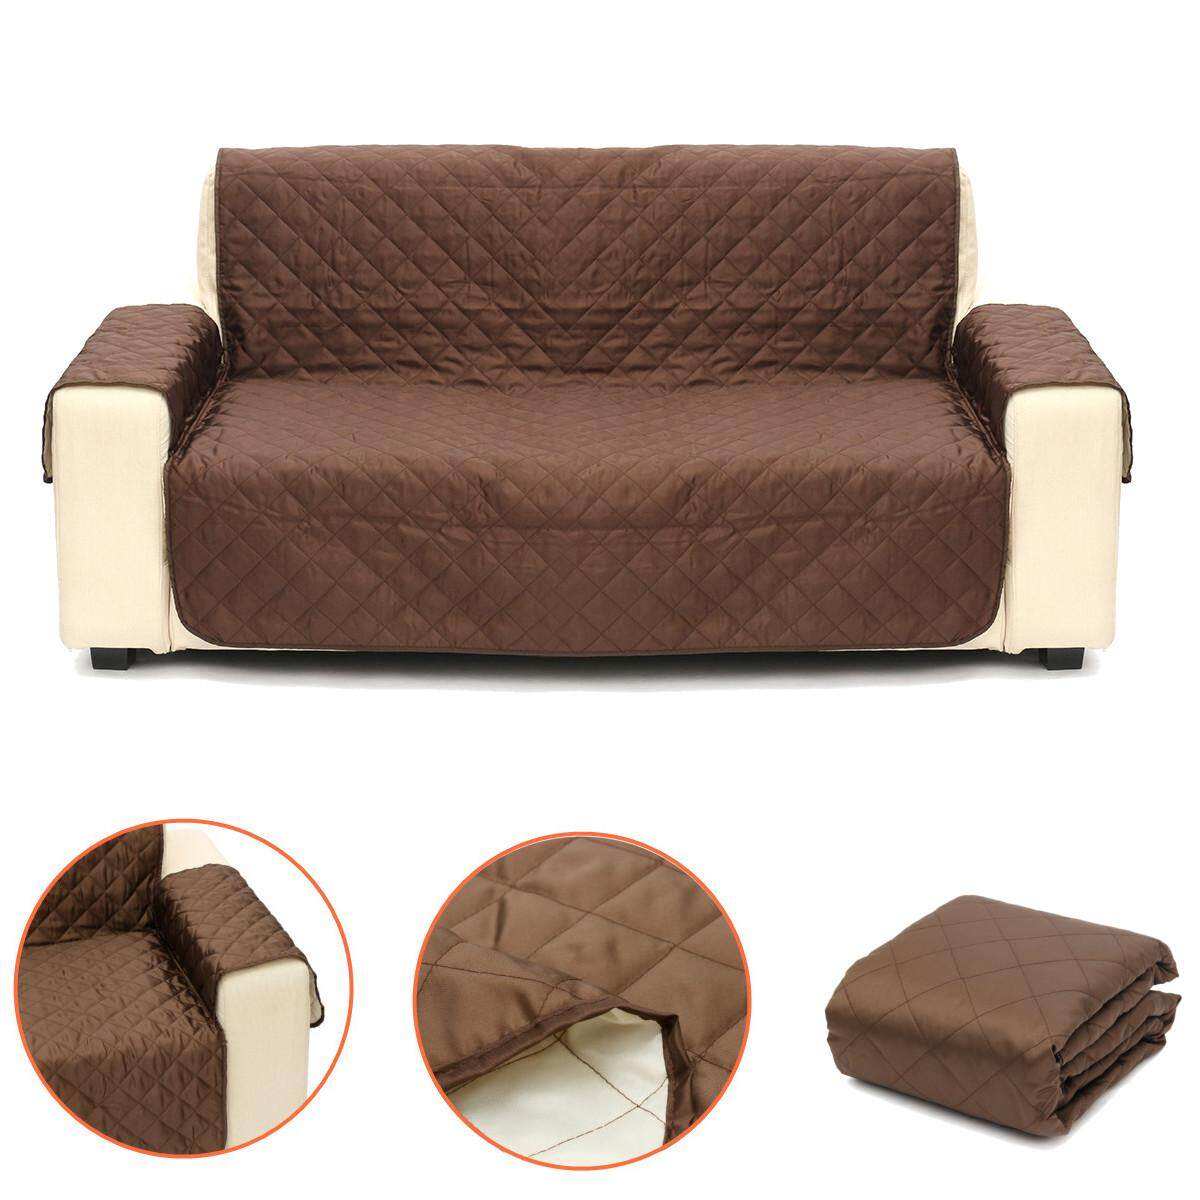 Quilted Reversible Microfiber Pet Dog Cat Couch Sofa Furniture Protector Cover